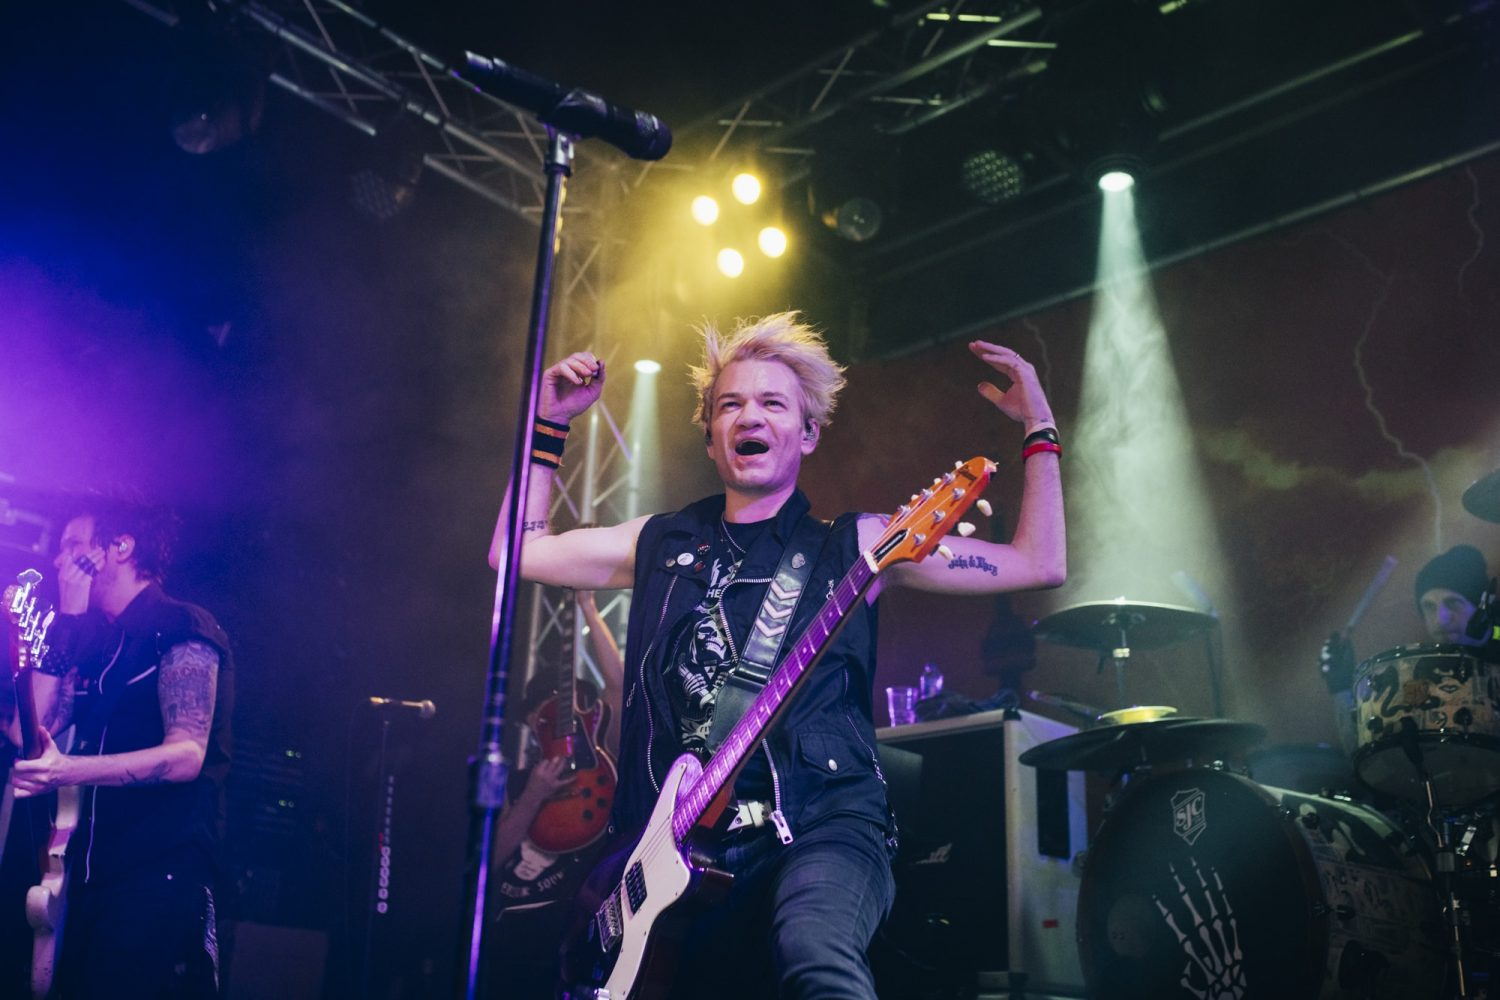 Sum 41 played a tiny London show, and it looked like this